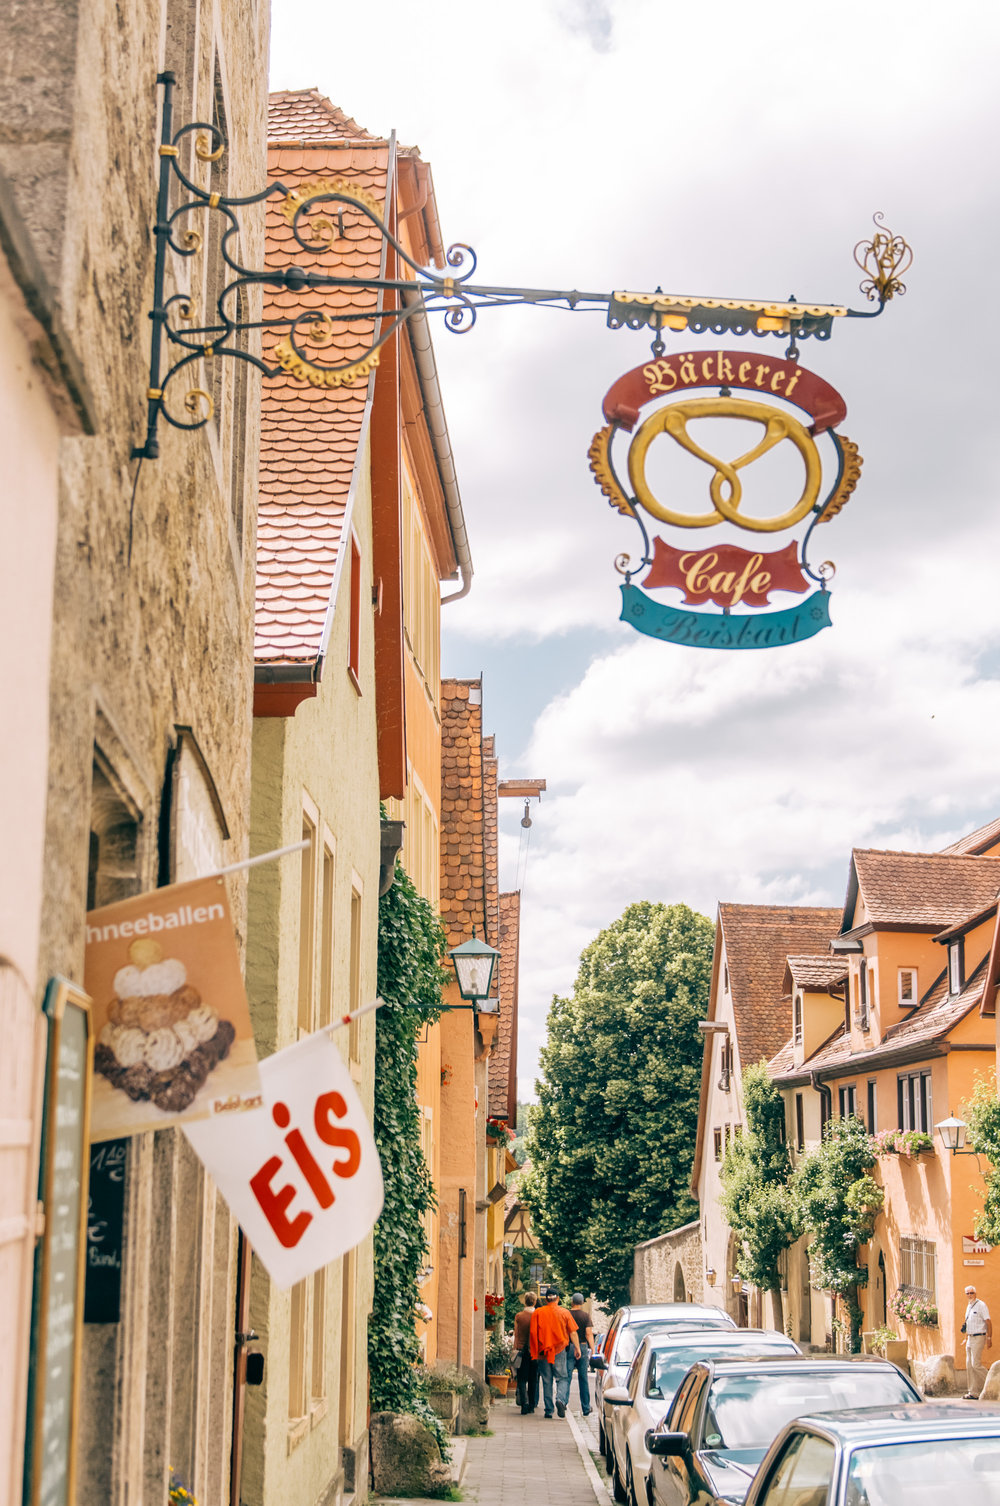 rothenburg-xavier-manhing-54.jpg